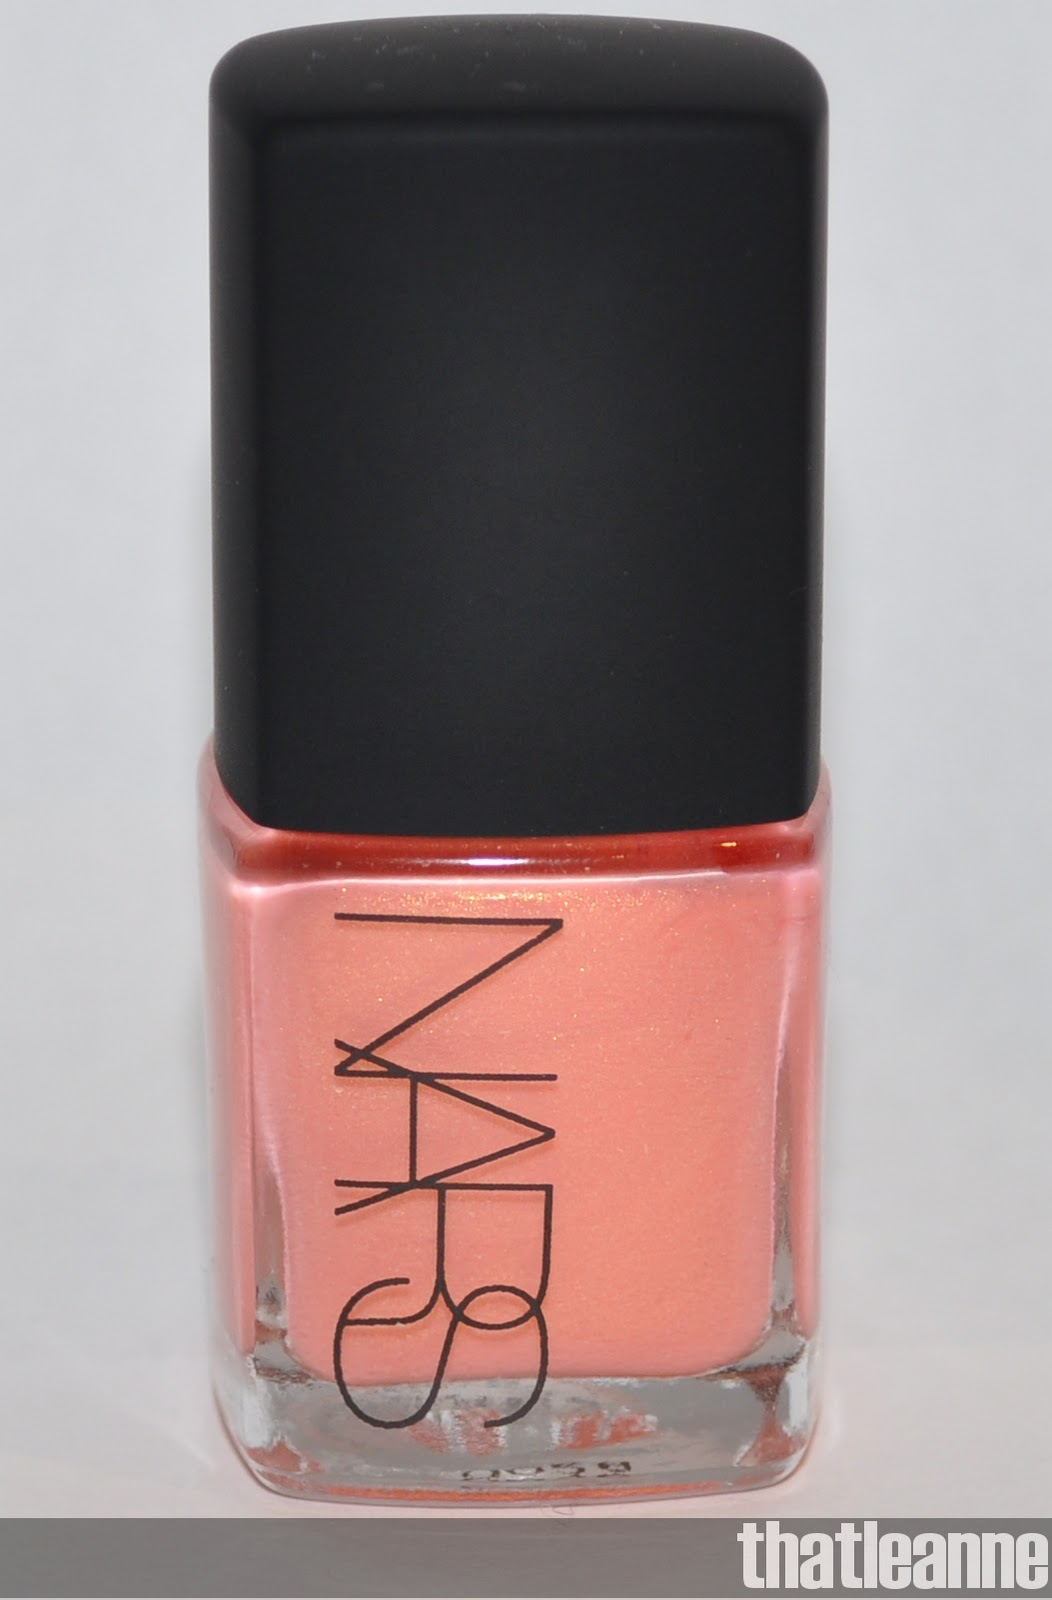 crackle nail polish,  nail polish colors,  neon nail polish,  nail polish bottle, spilled nail polish,  bright nail polish-91